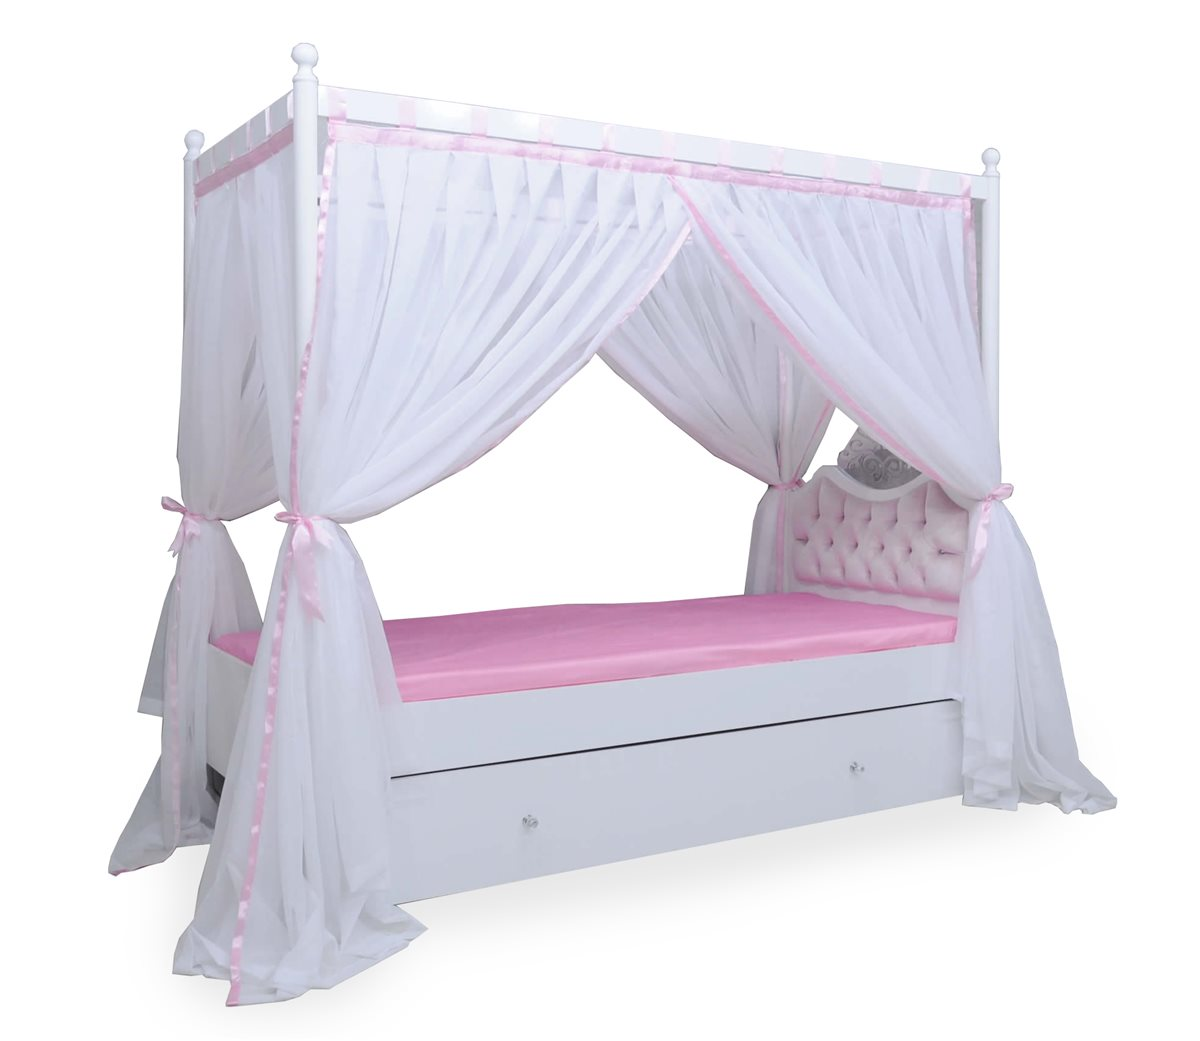 anastasia himmelbett kinder bett himmel rosa 200 x 90 ebay. Black Bedroom Furniture Sets. Home Design Ideas